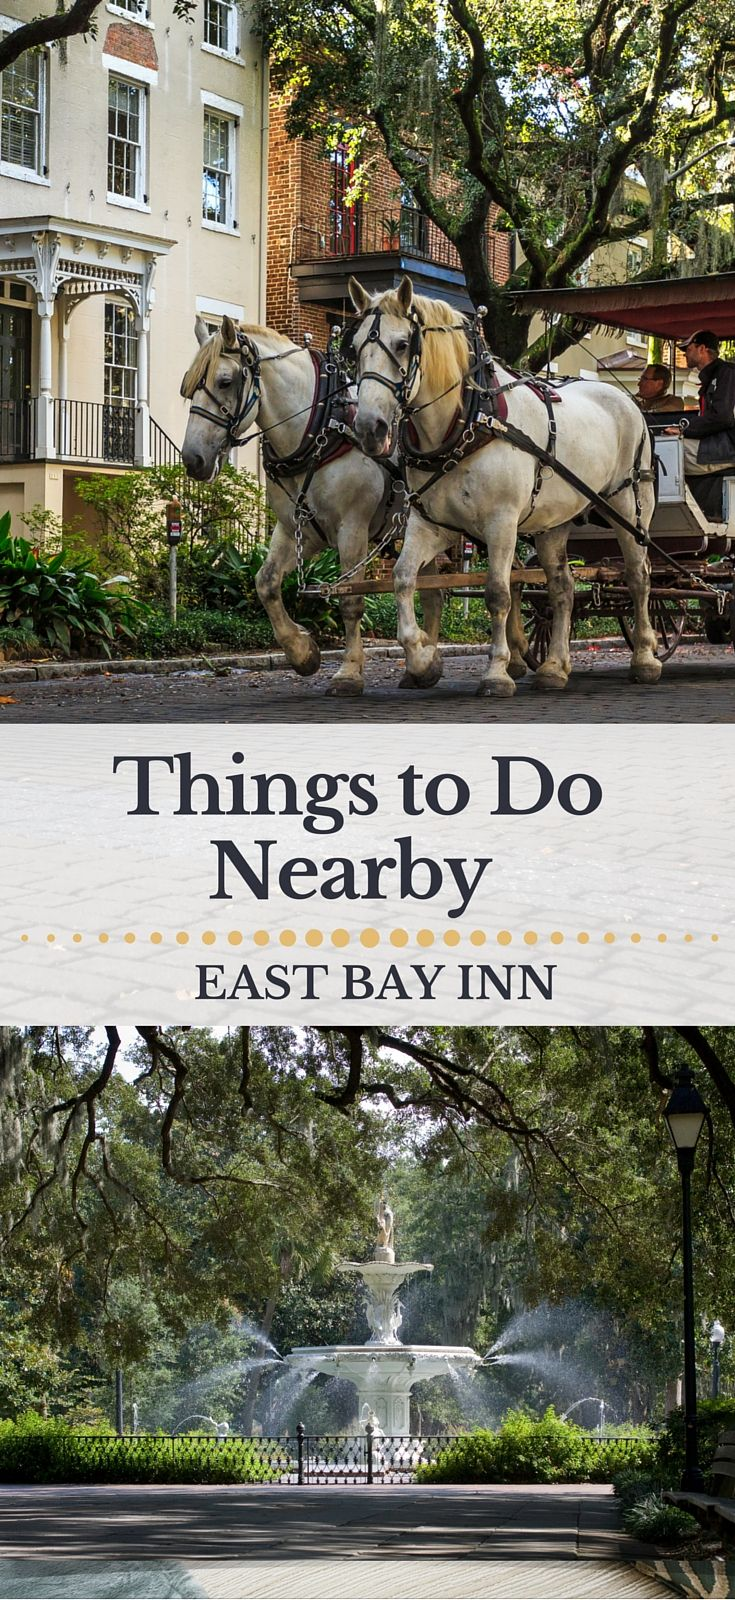 Things To Do in Savannah near The East Bay Inn --- You'll never run out of things to do in Savannah. From horse-drawn carriage rides and ghost tours to museum visits and day-trips to the beach, Savannah offers a long list of attractions and activities for every member of your group.  And, it's all easily accessible from East Bay Inn's perfect downtown location. Here's a list of things most guests like to do when they stay at East Bay Inn.